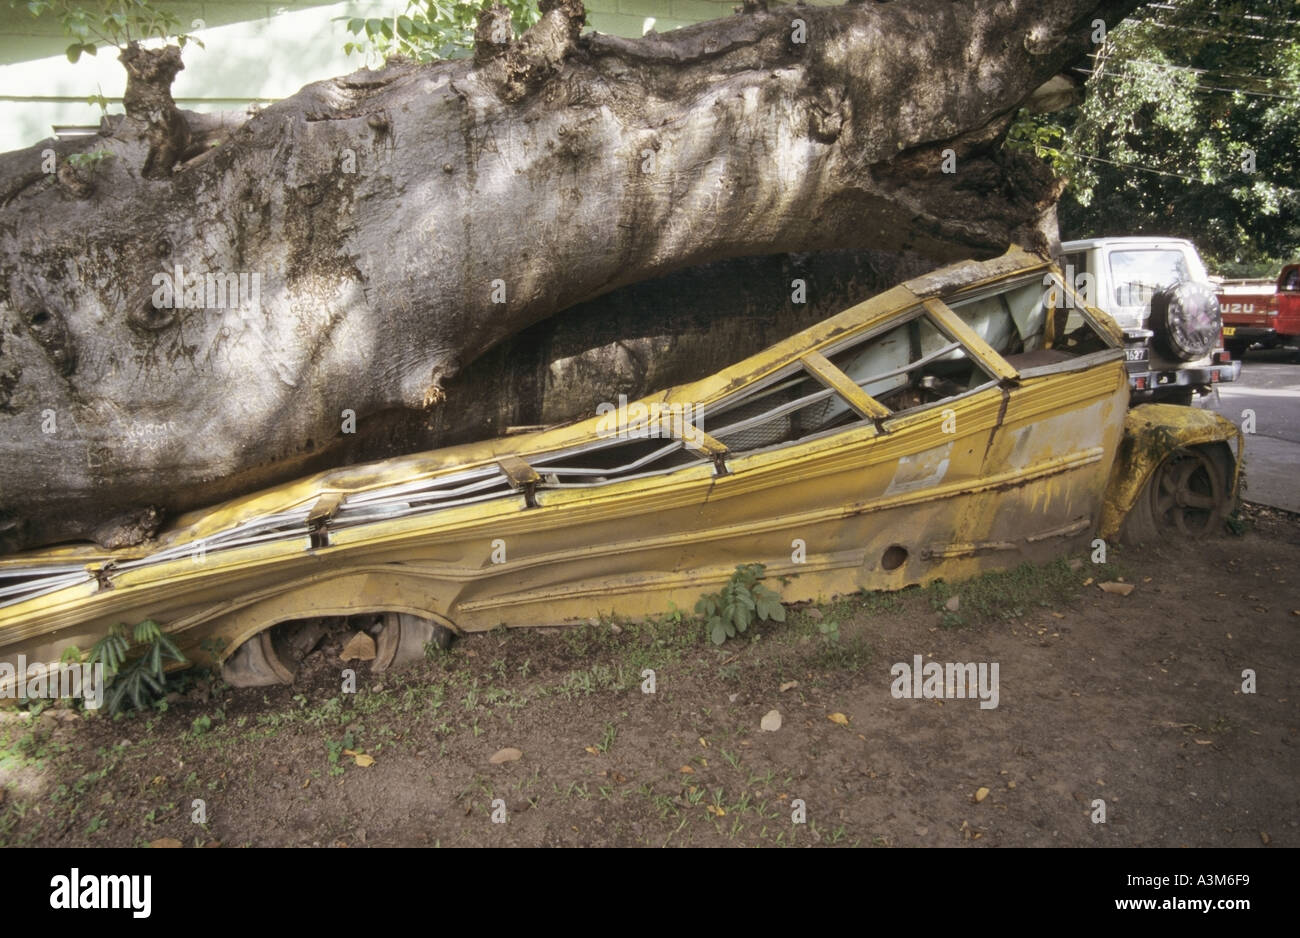 Roseau The Botanical Gardens hurricane damage to yellow school bus ...